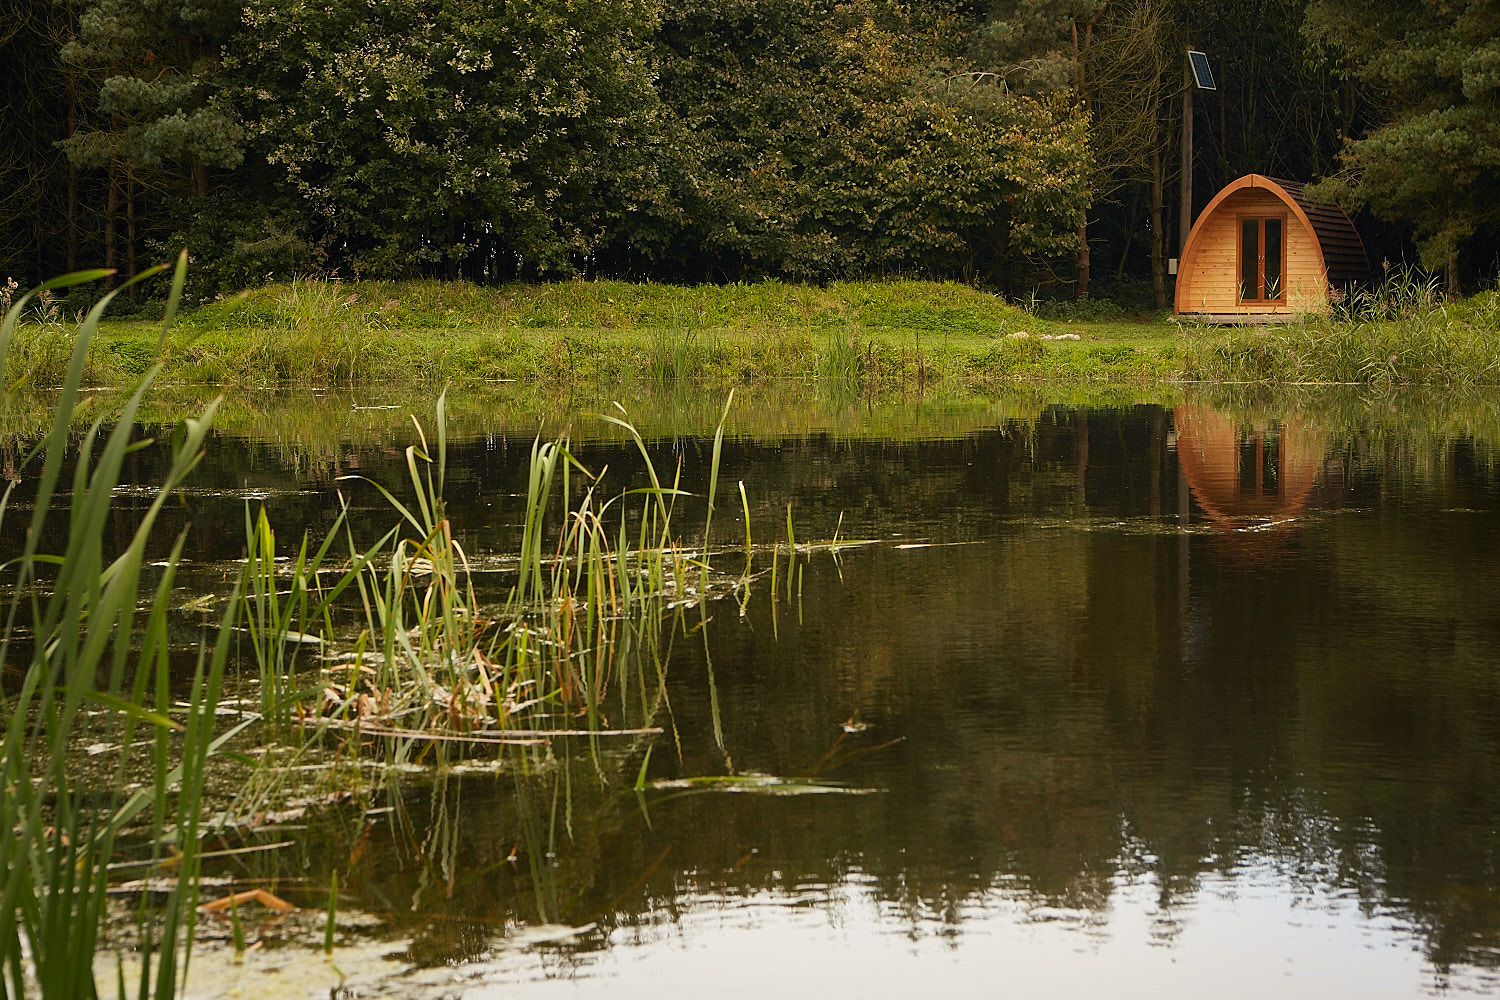 camping pods in rural England